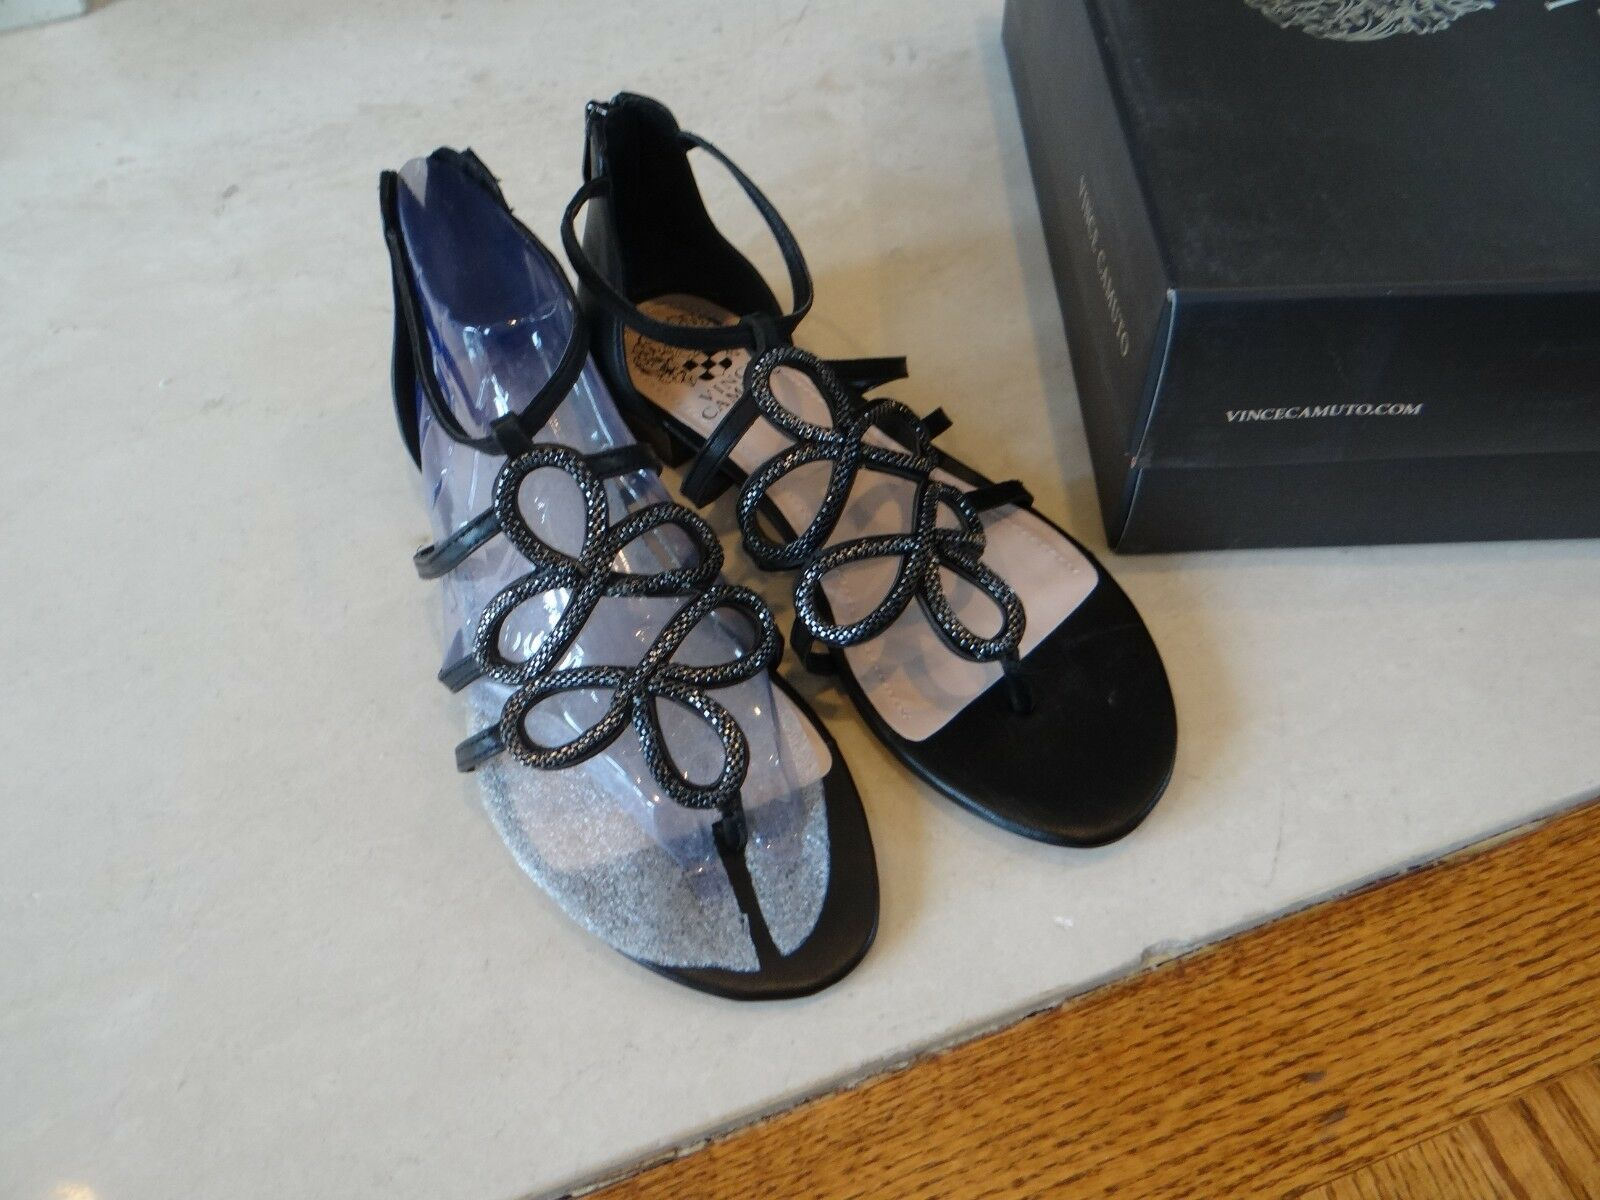 1 Paire 7 m noir Flats Vince Camuto New in Box Harissa